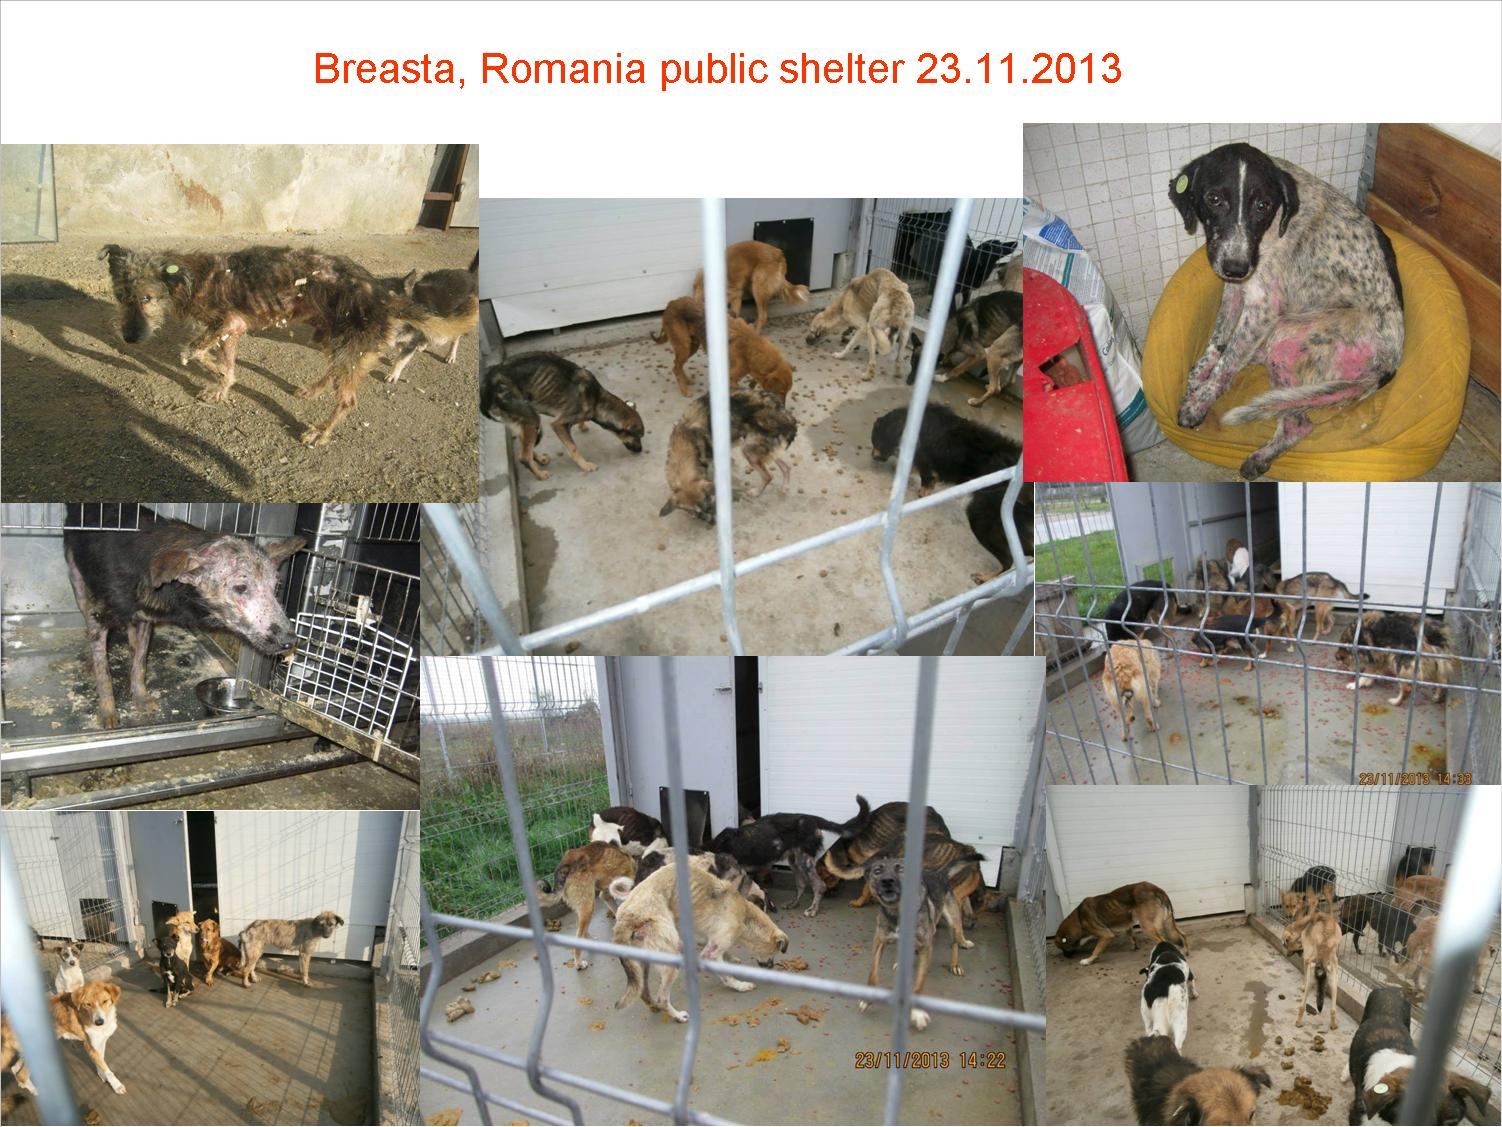 Breasta animal shelter in craiova romania dating - dating a man who lives with his parents